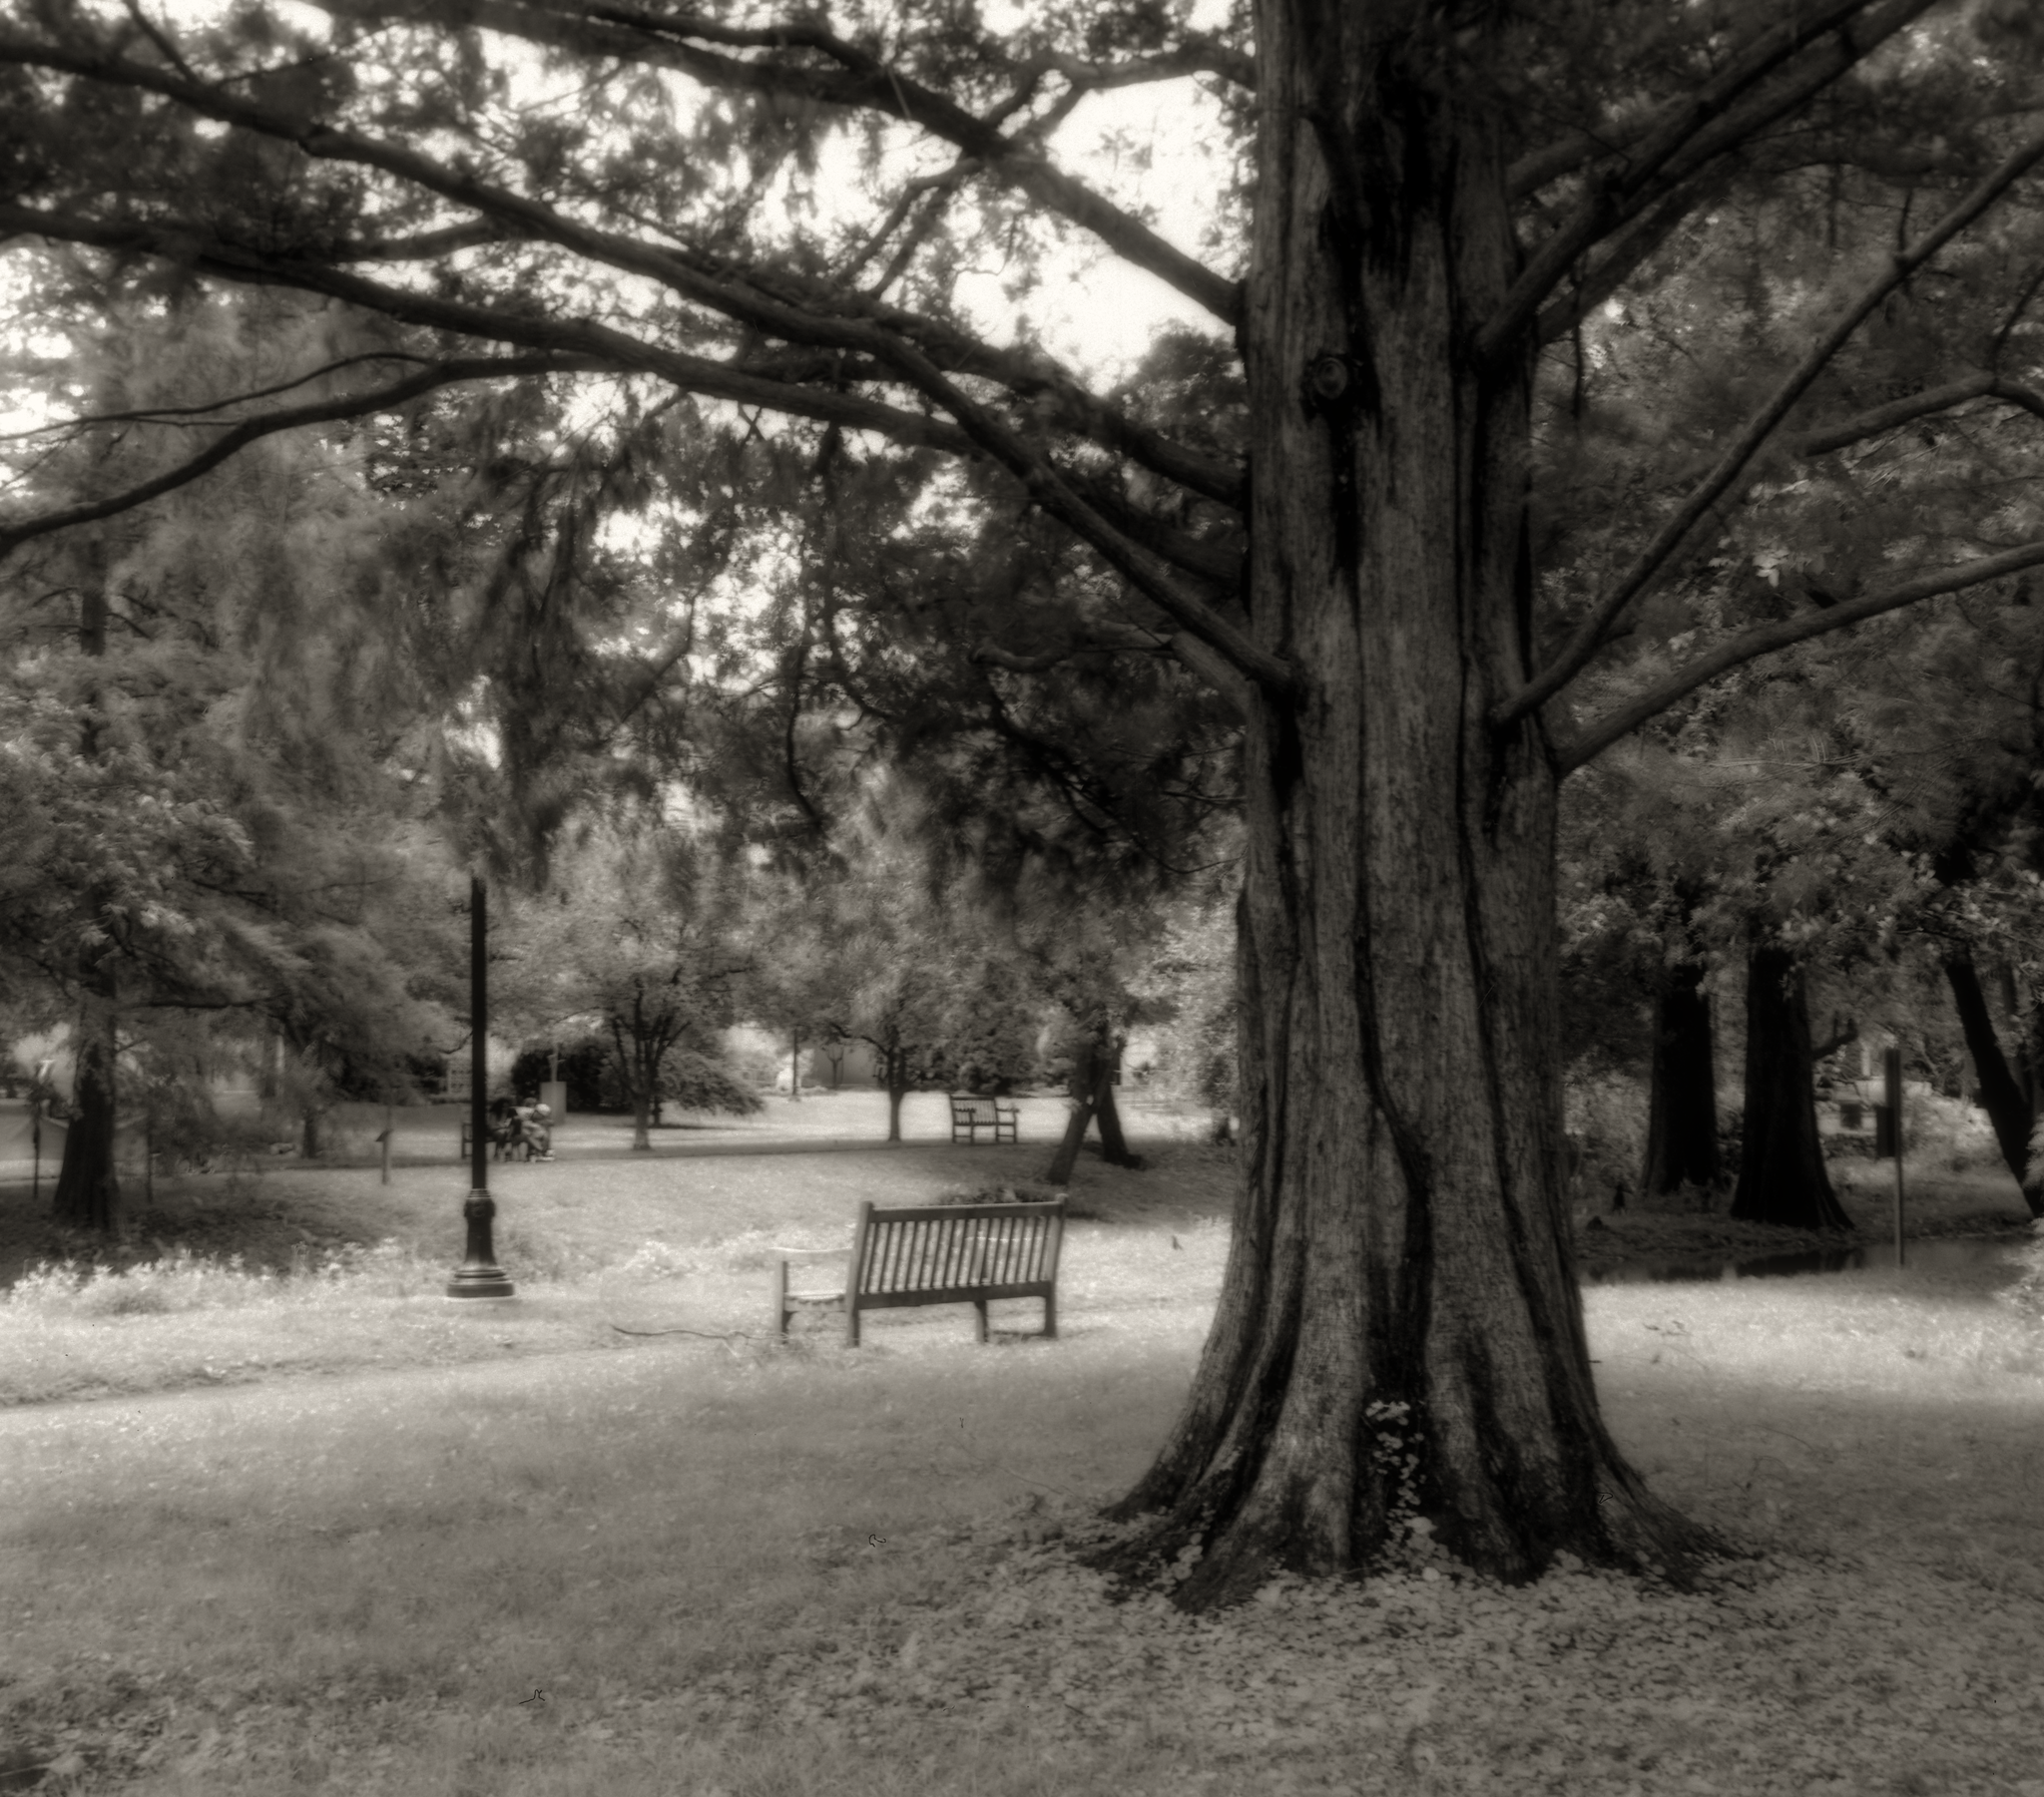 4x5_for_365_project_0189_Reading_Museum_tree_and_bench.png